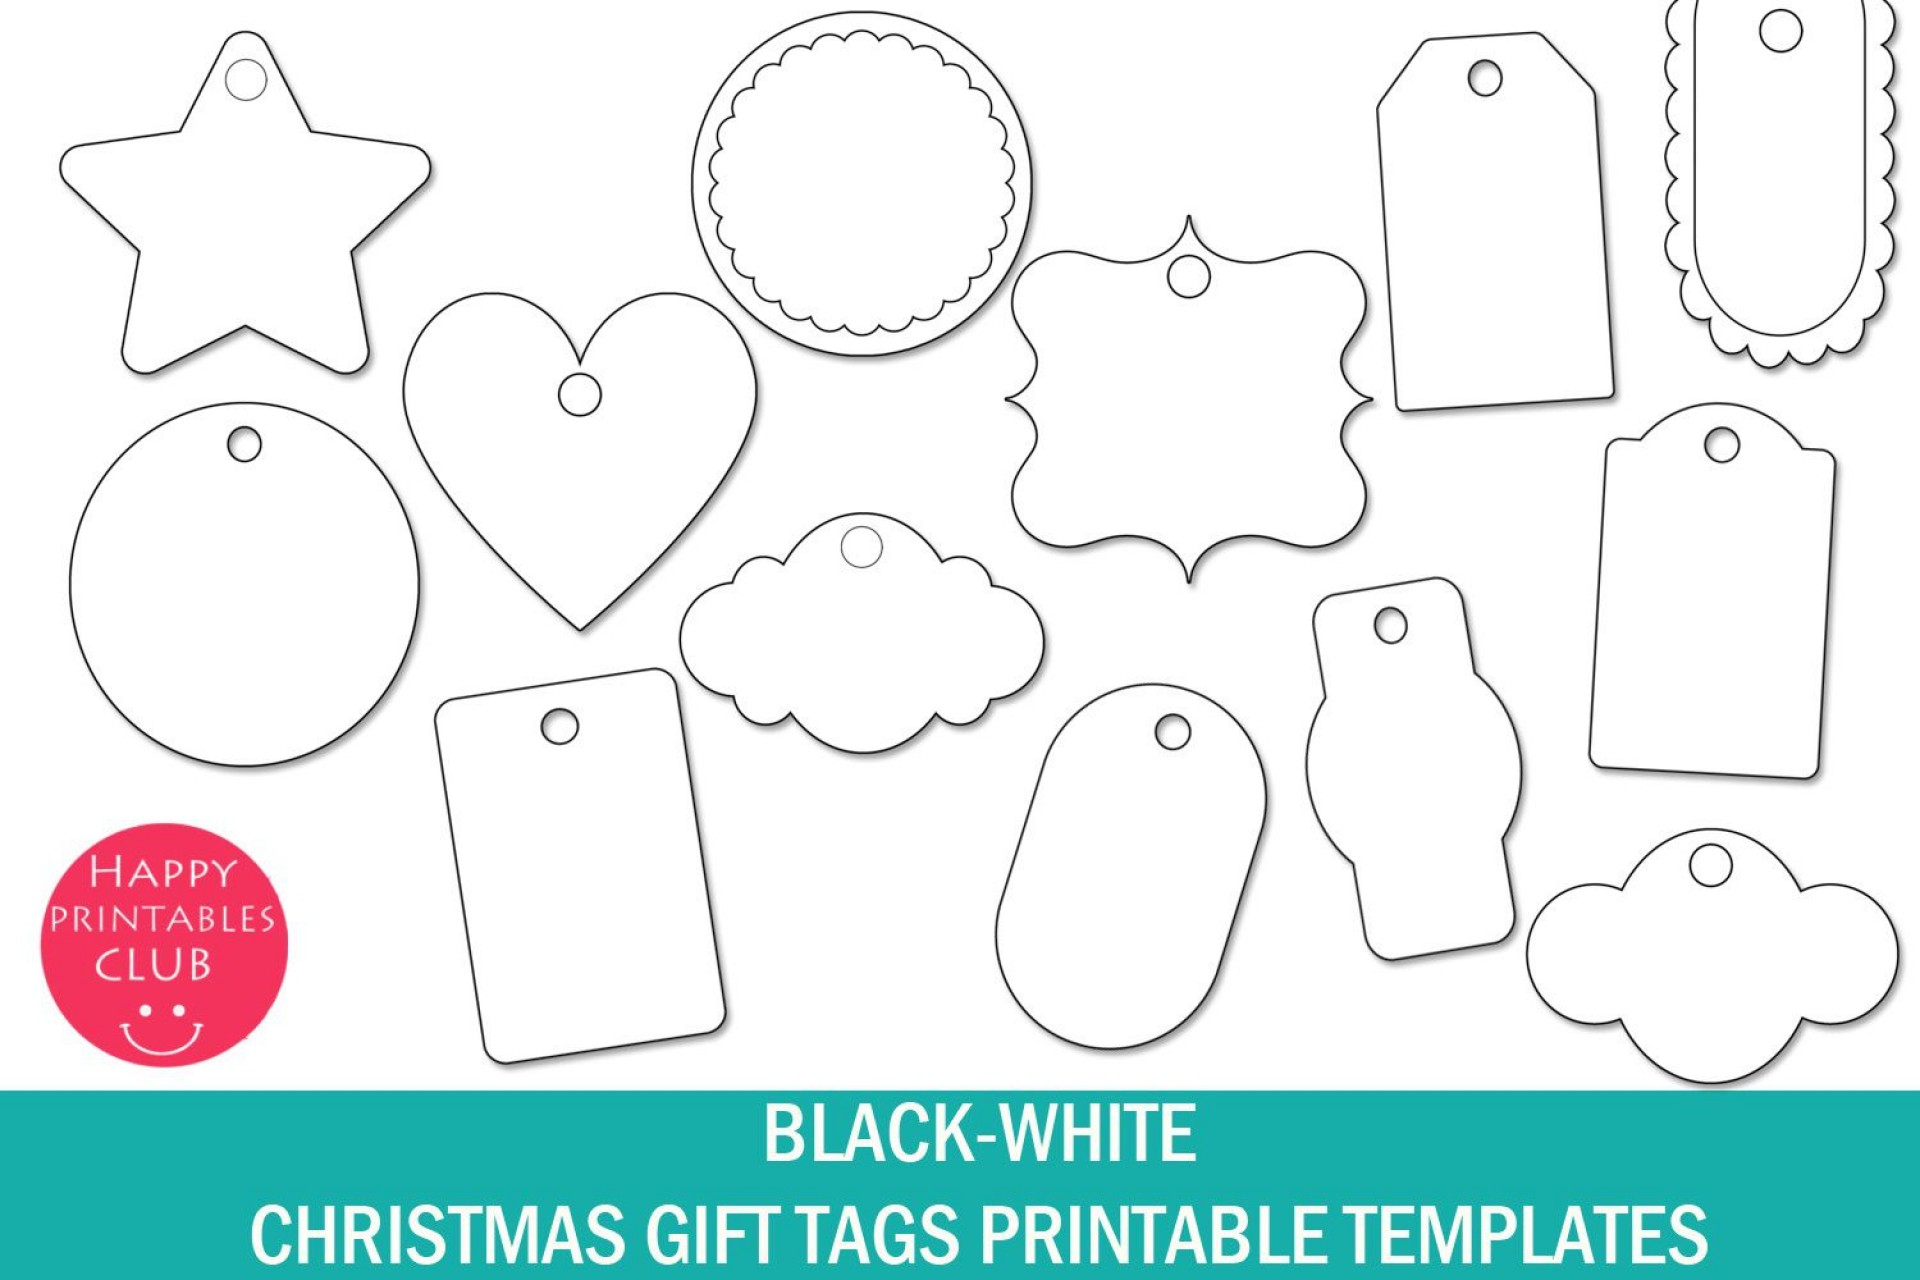 002 Imposing Template For Gift Tag Sample  Tags Blank Avery1920